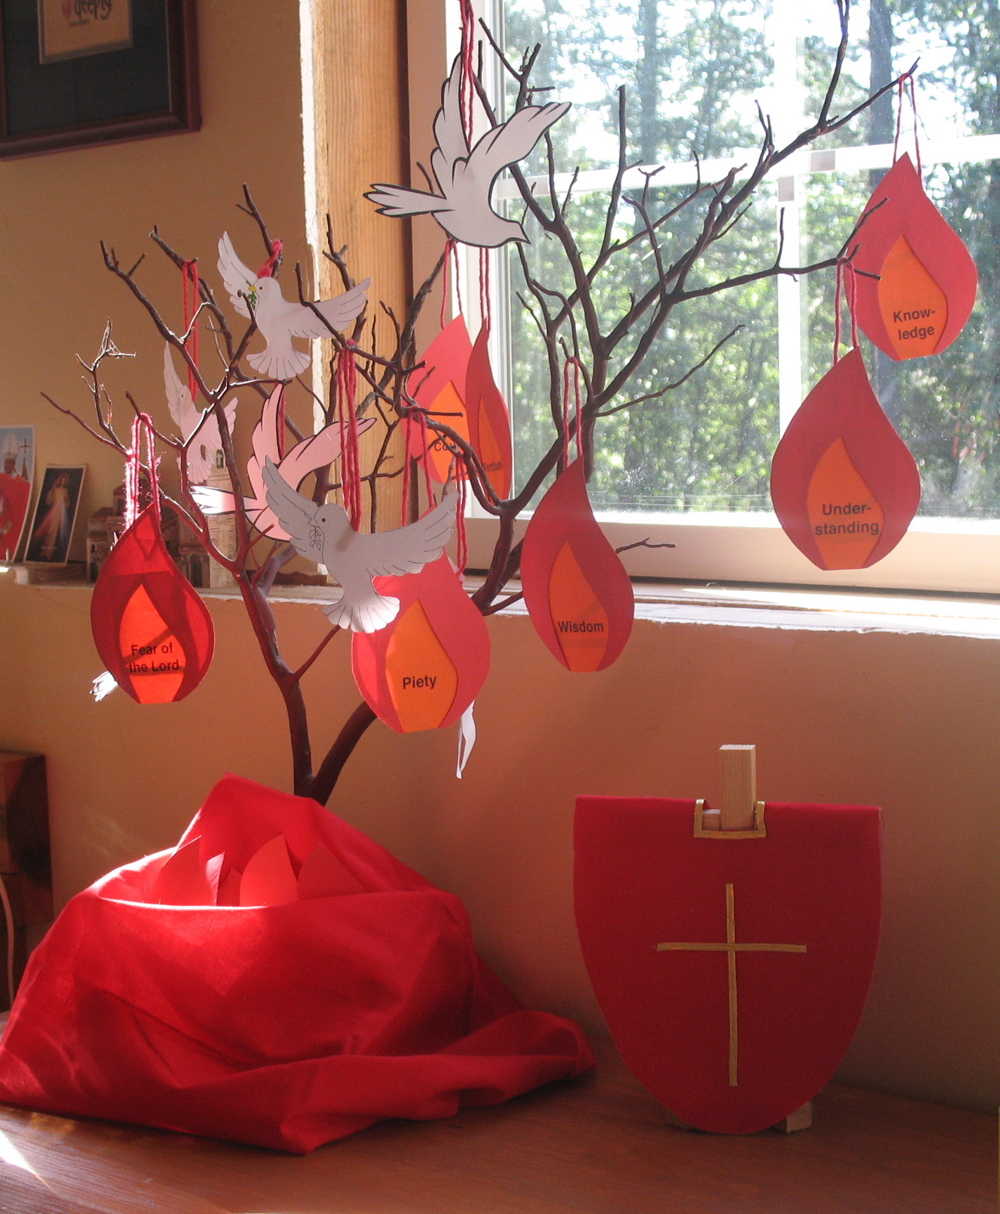 pentecost activities pinterest